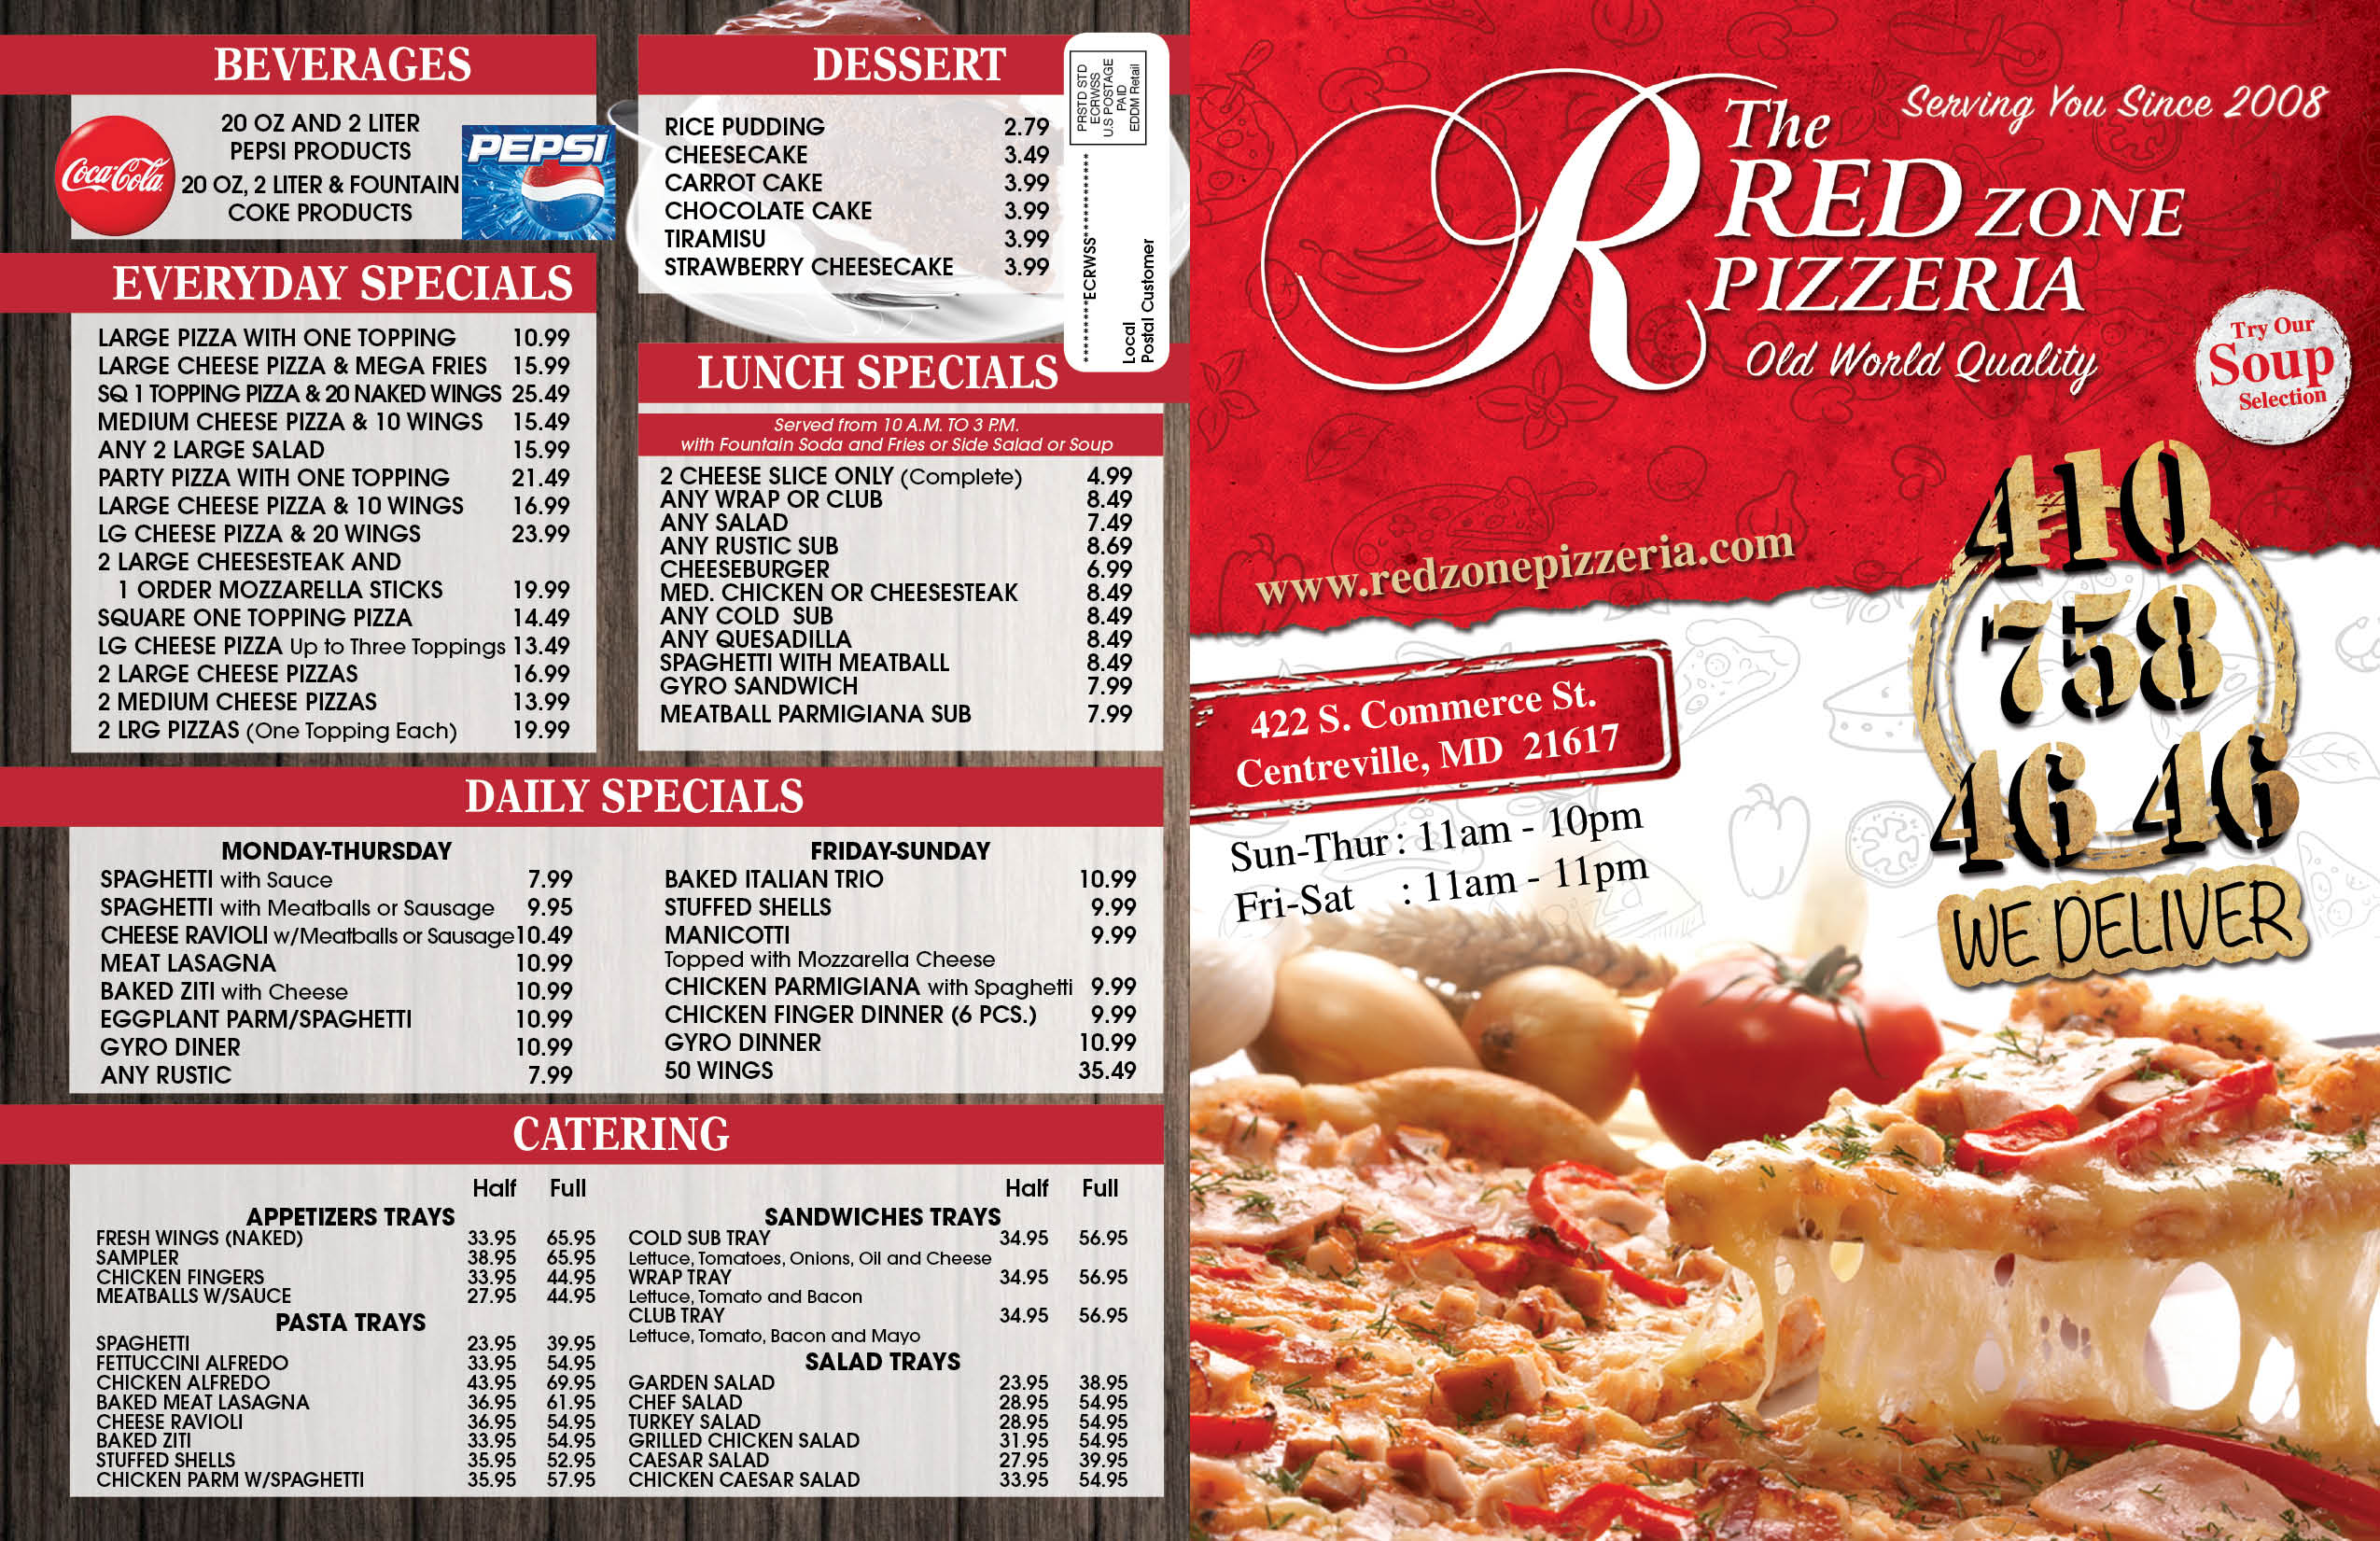 red pizza flyer - Dean.routechoice.co